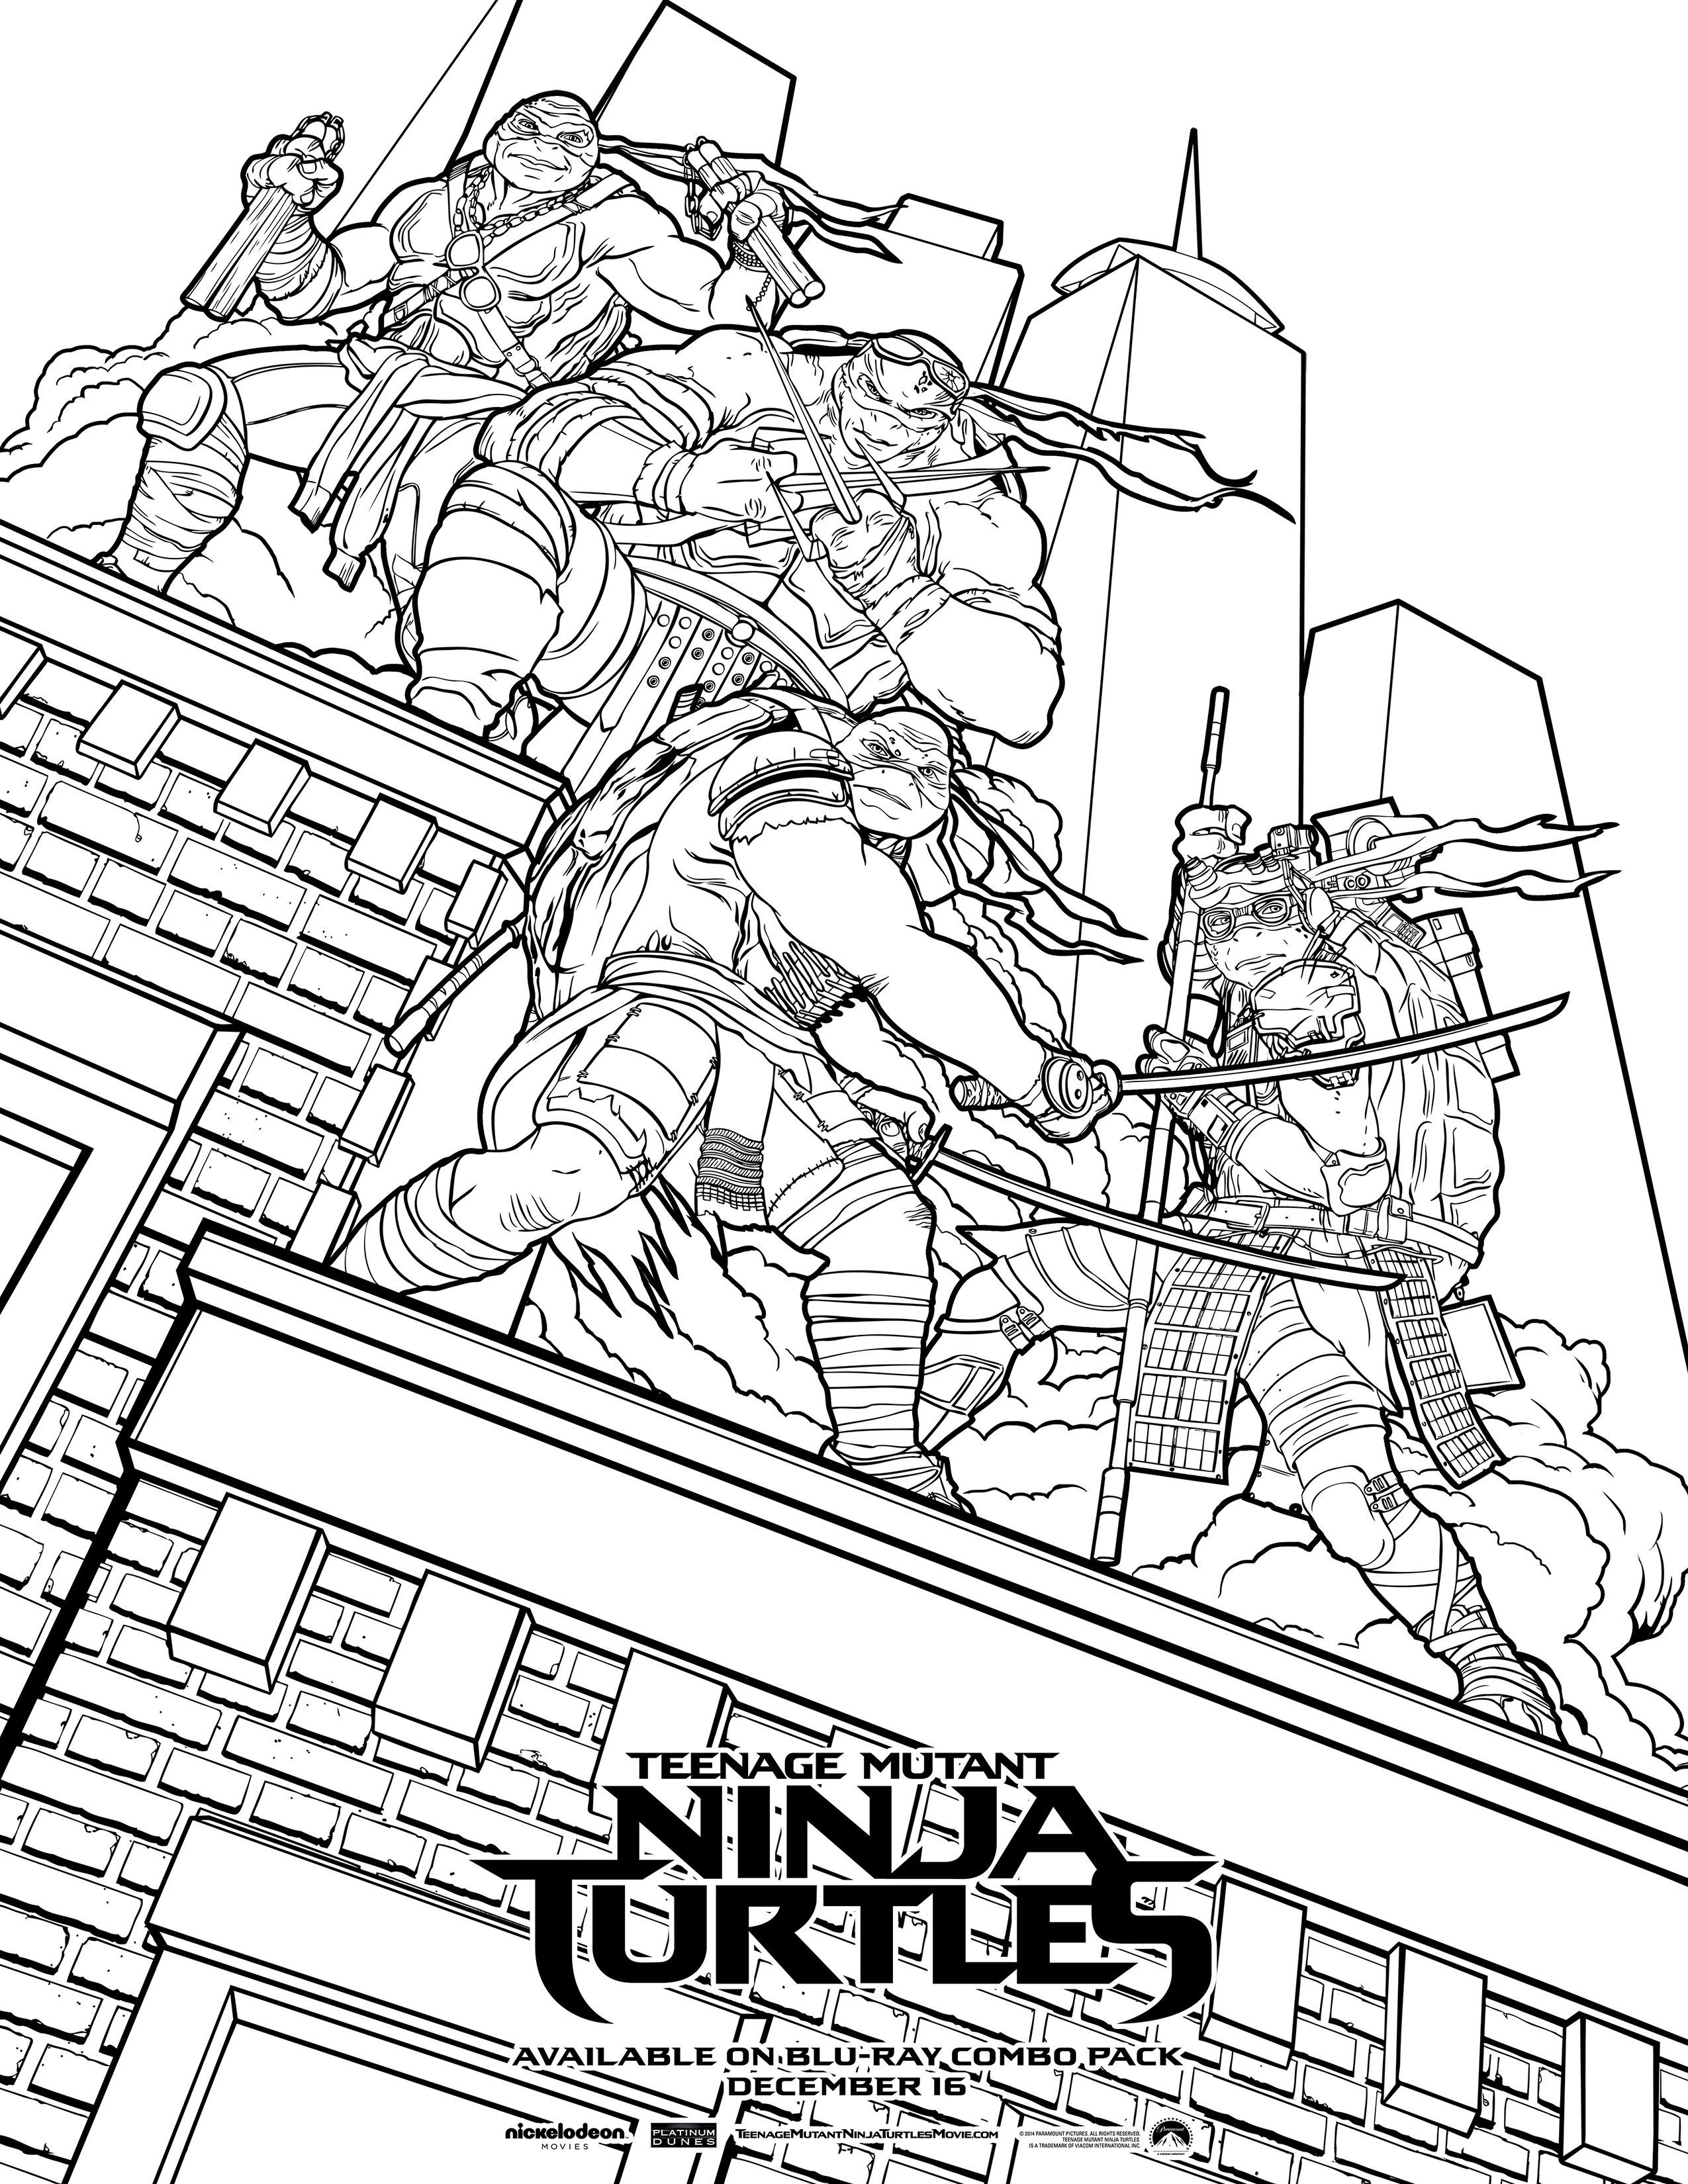 Ninja Turtle Coloring Page Teenage Mutant Ninja Turtles Coloring Pages With First Class Entitlementtrap Com In 2020 Ninja Turtle Coloring Pages Turtle Coloring Pages Ninja Turtles